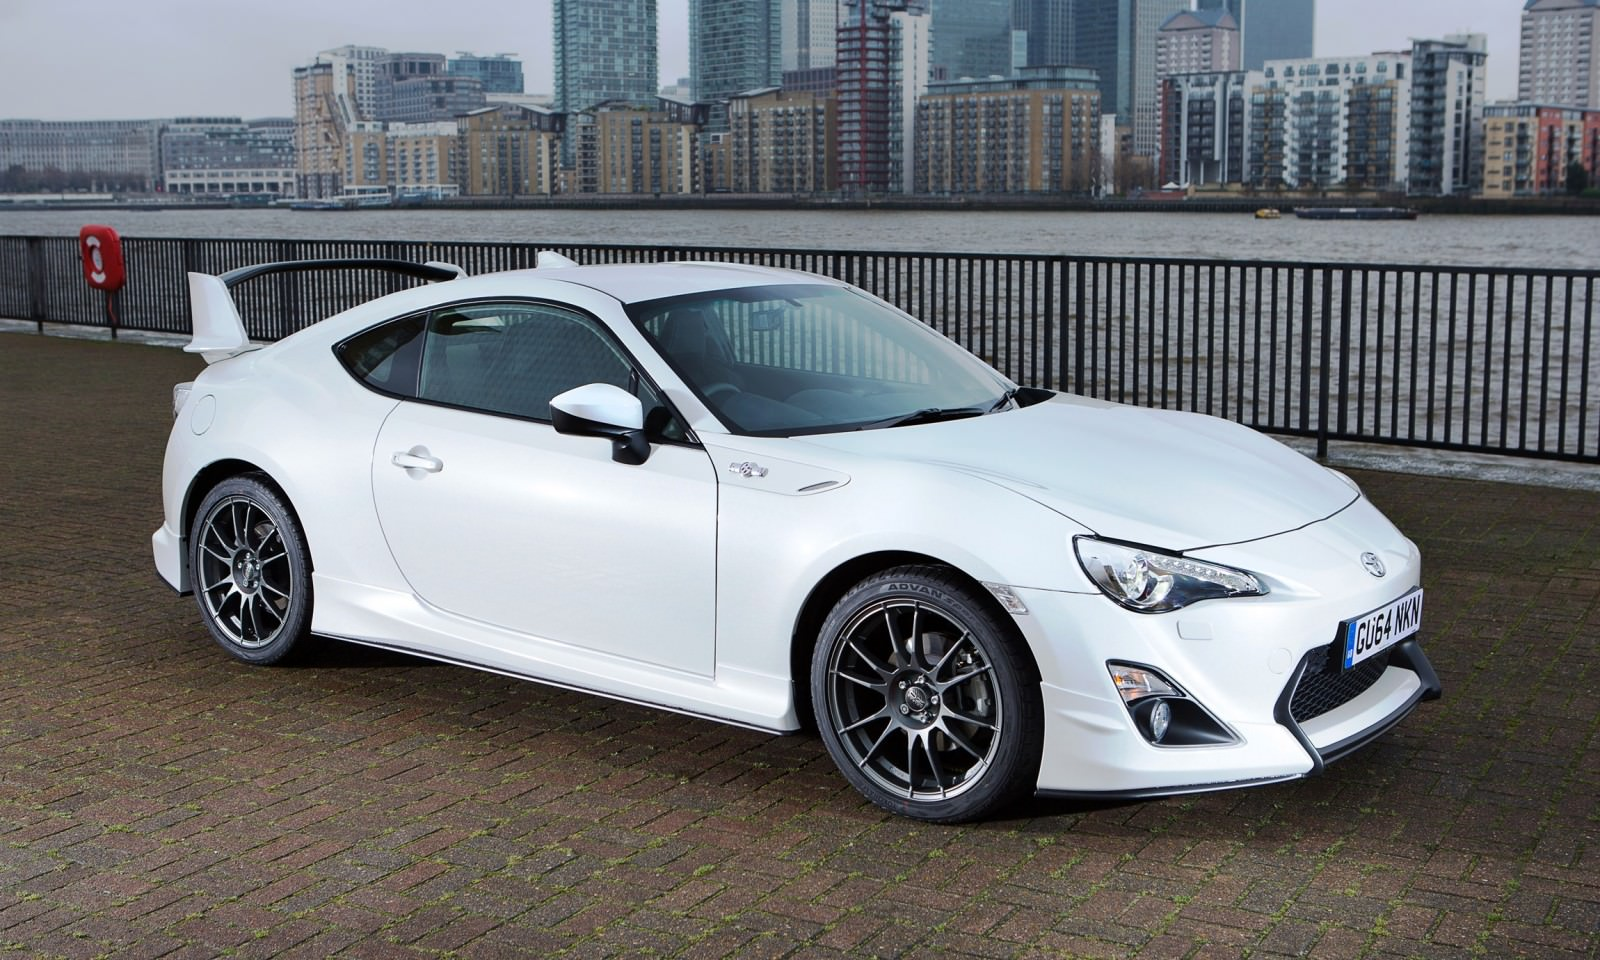 2015 toyota gt86. Black Bedroom Furniture Sets. Home Design Ideas